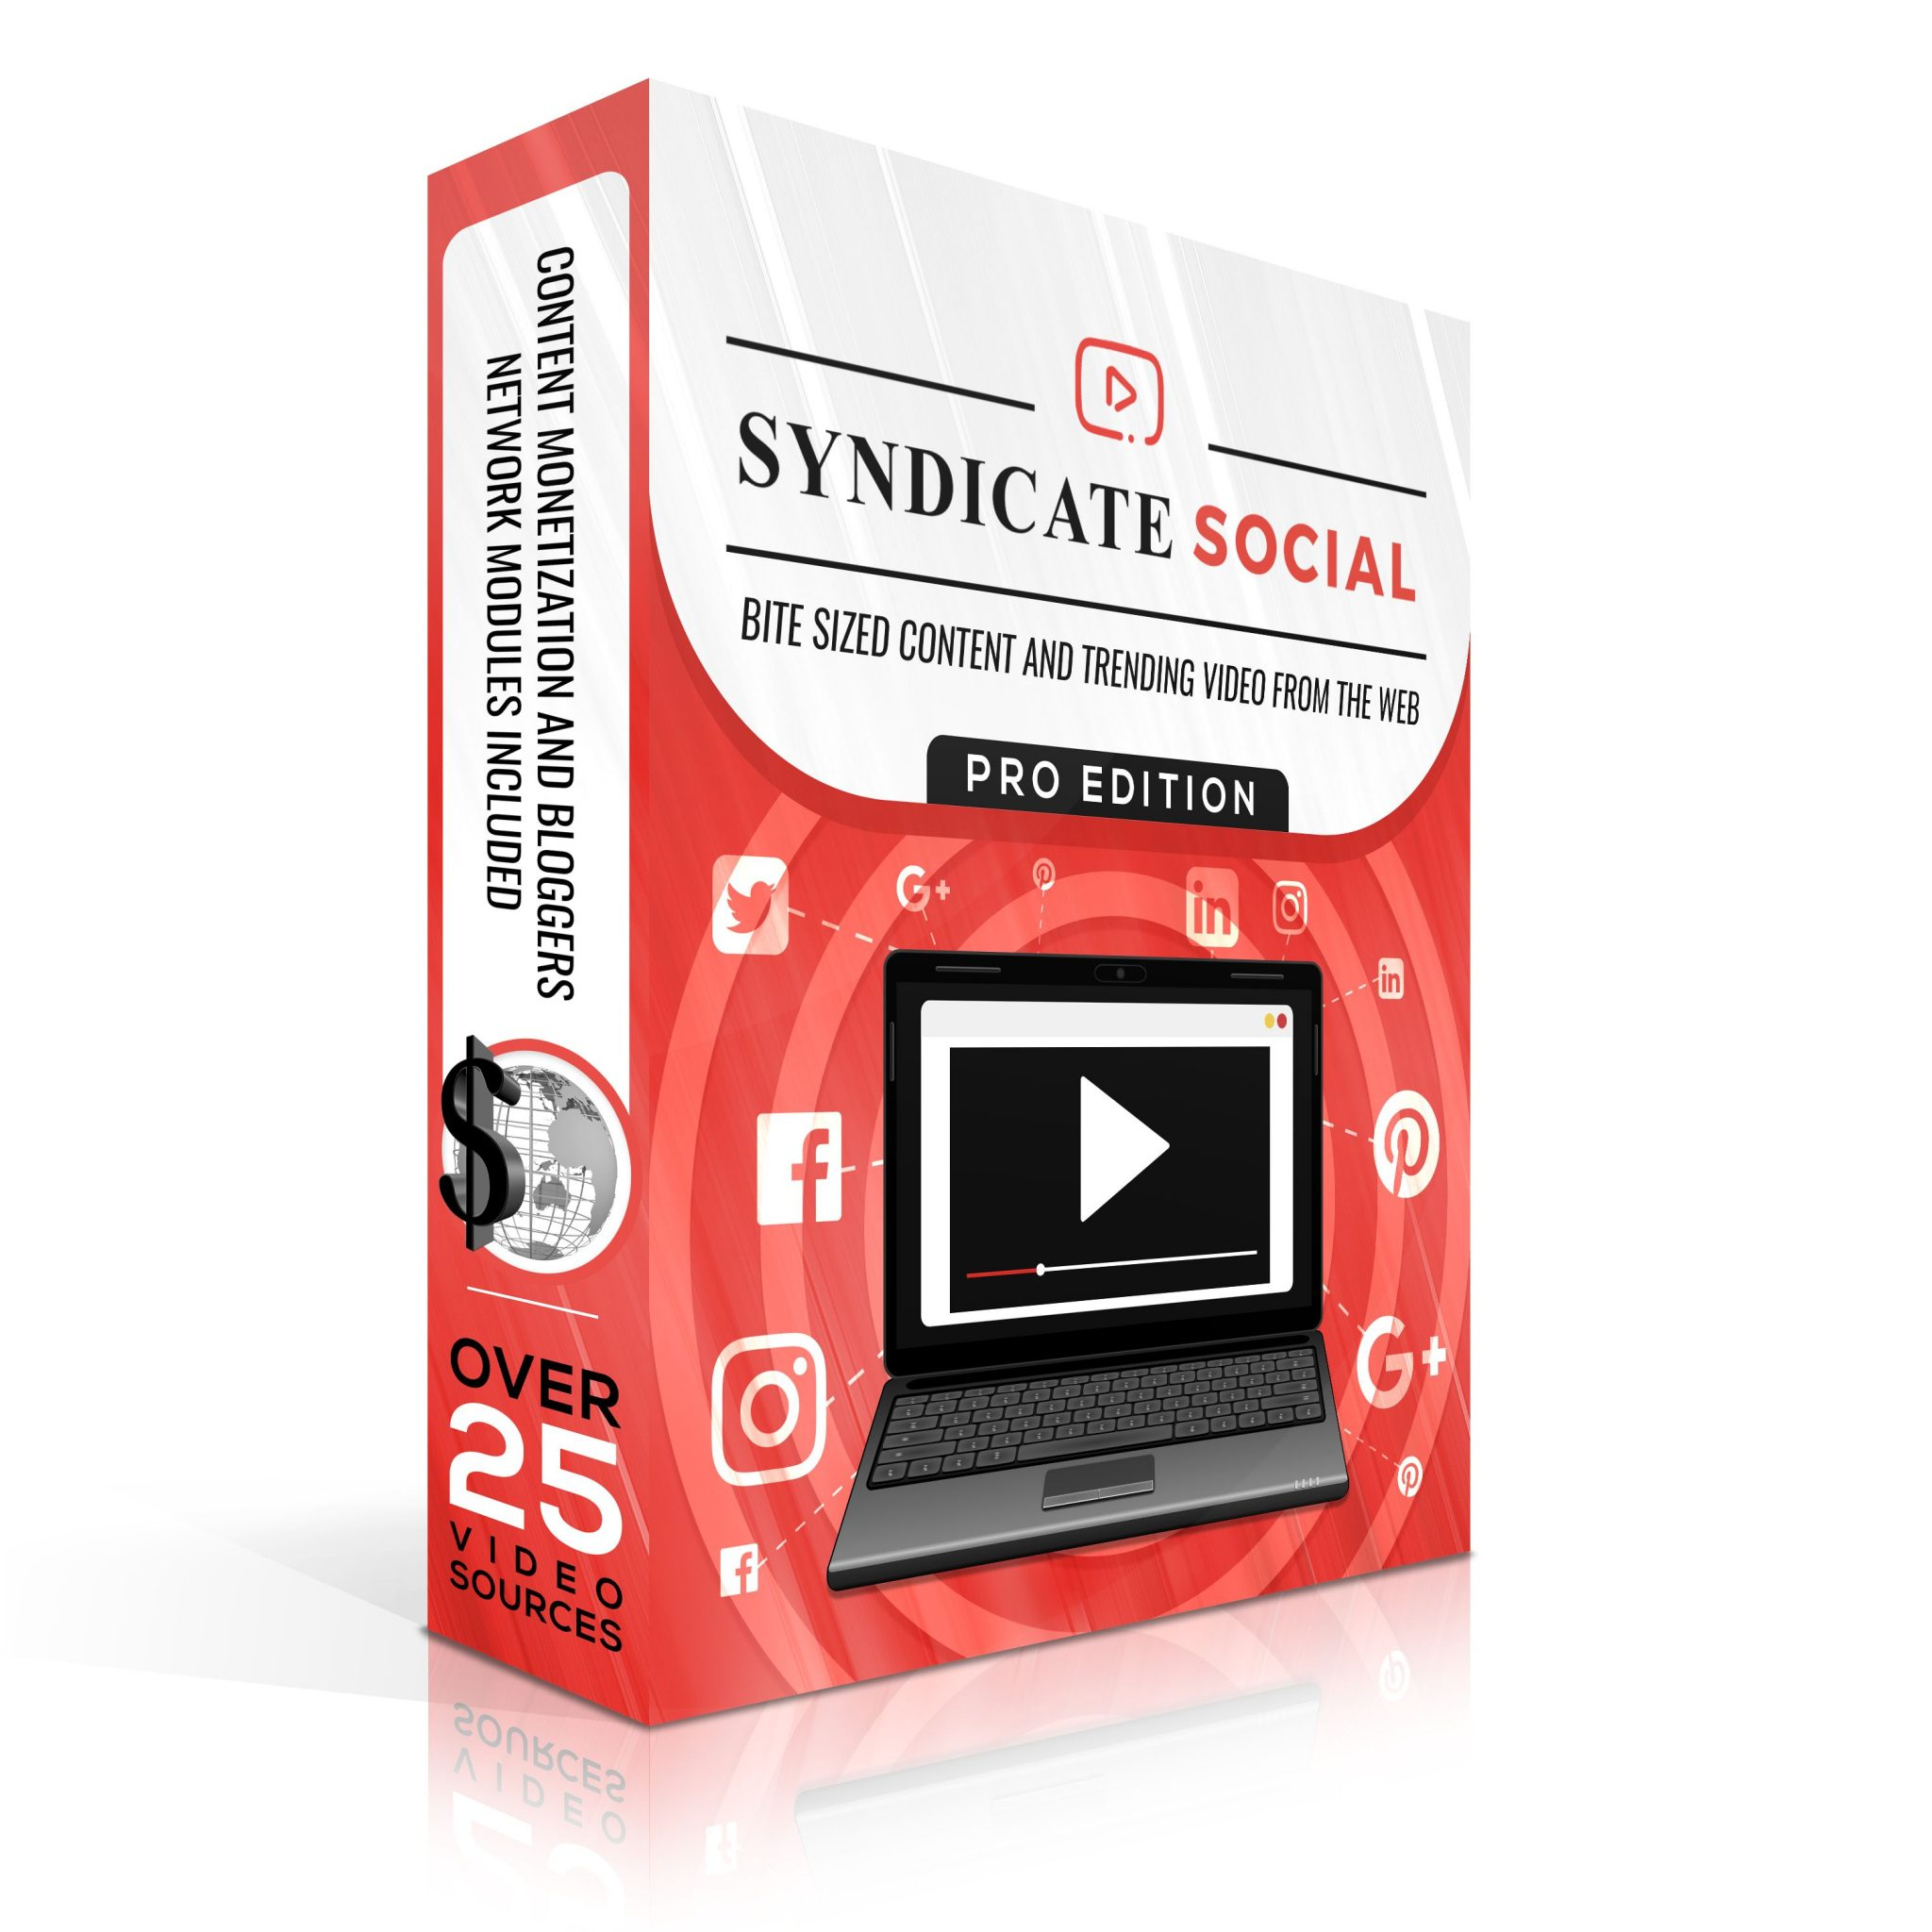 Syndicate Social Pro